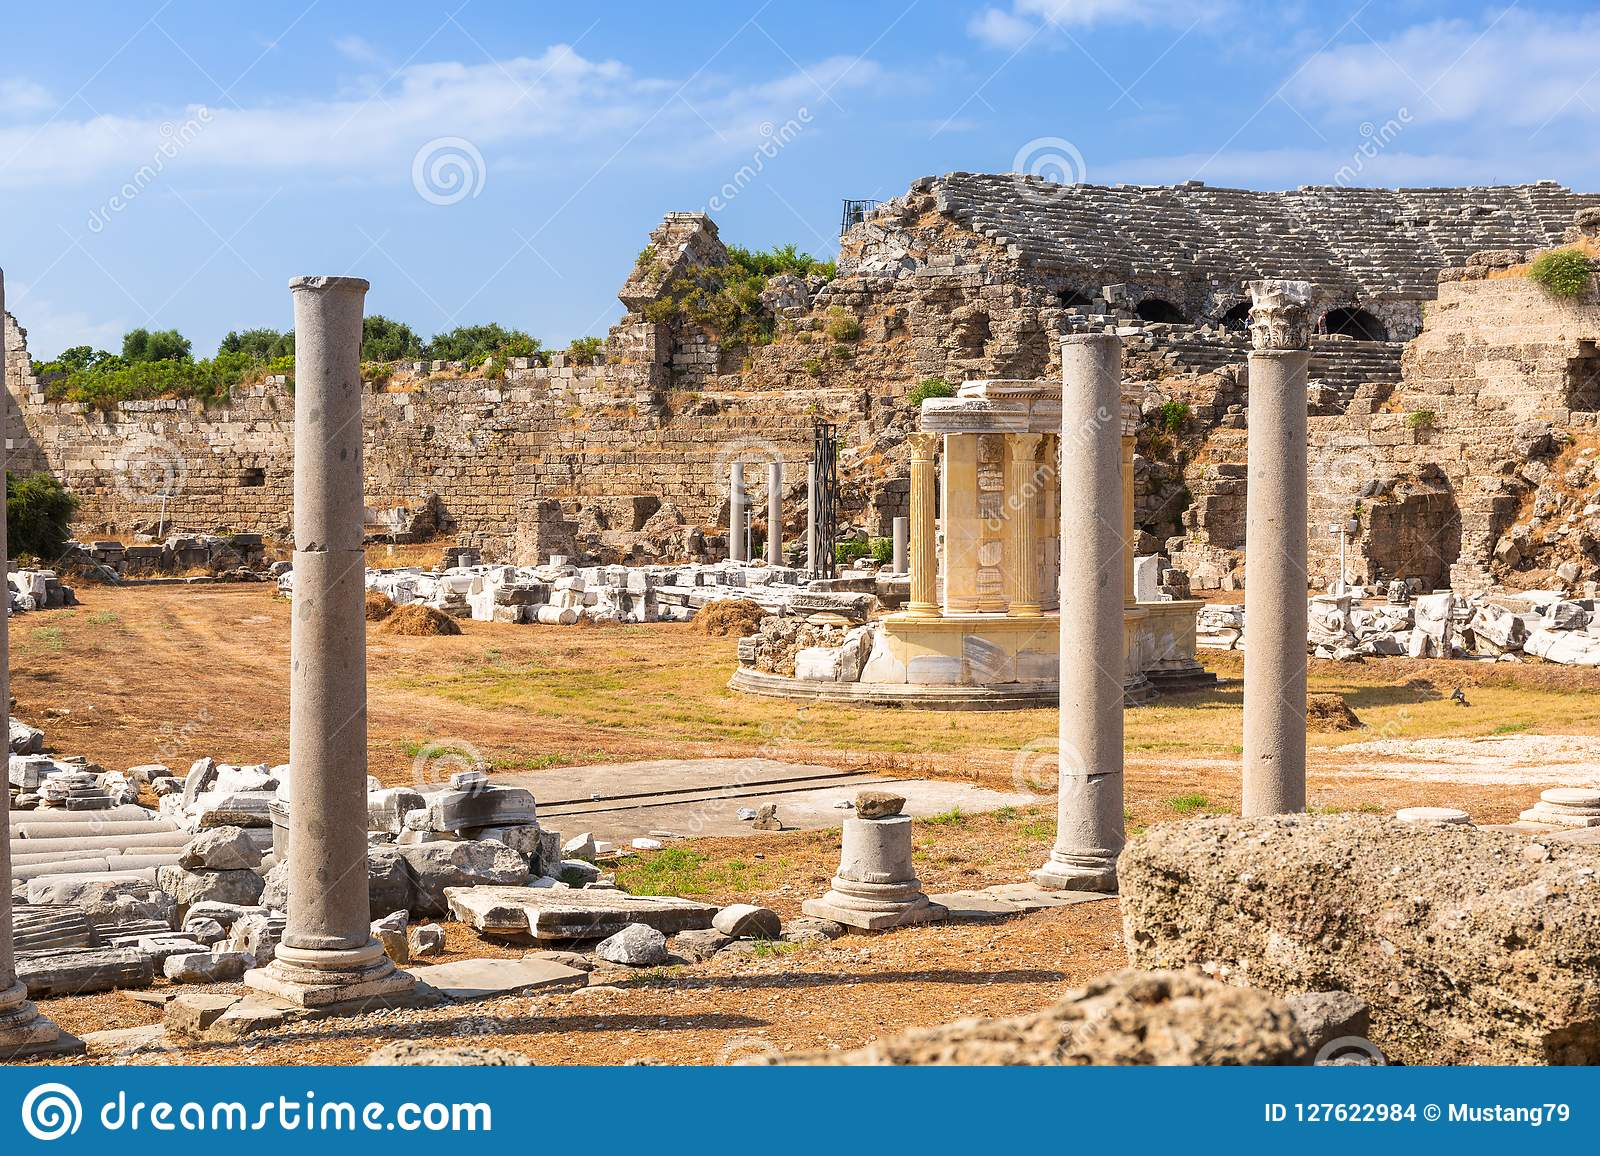 Architecture of ancient Greek ruins in Side,